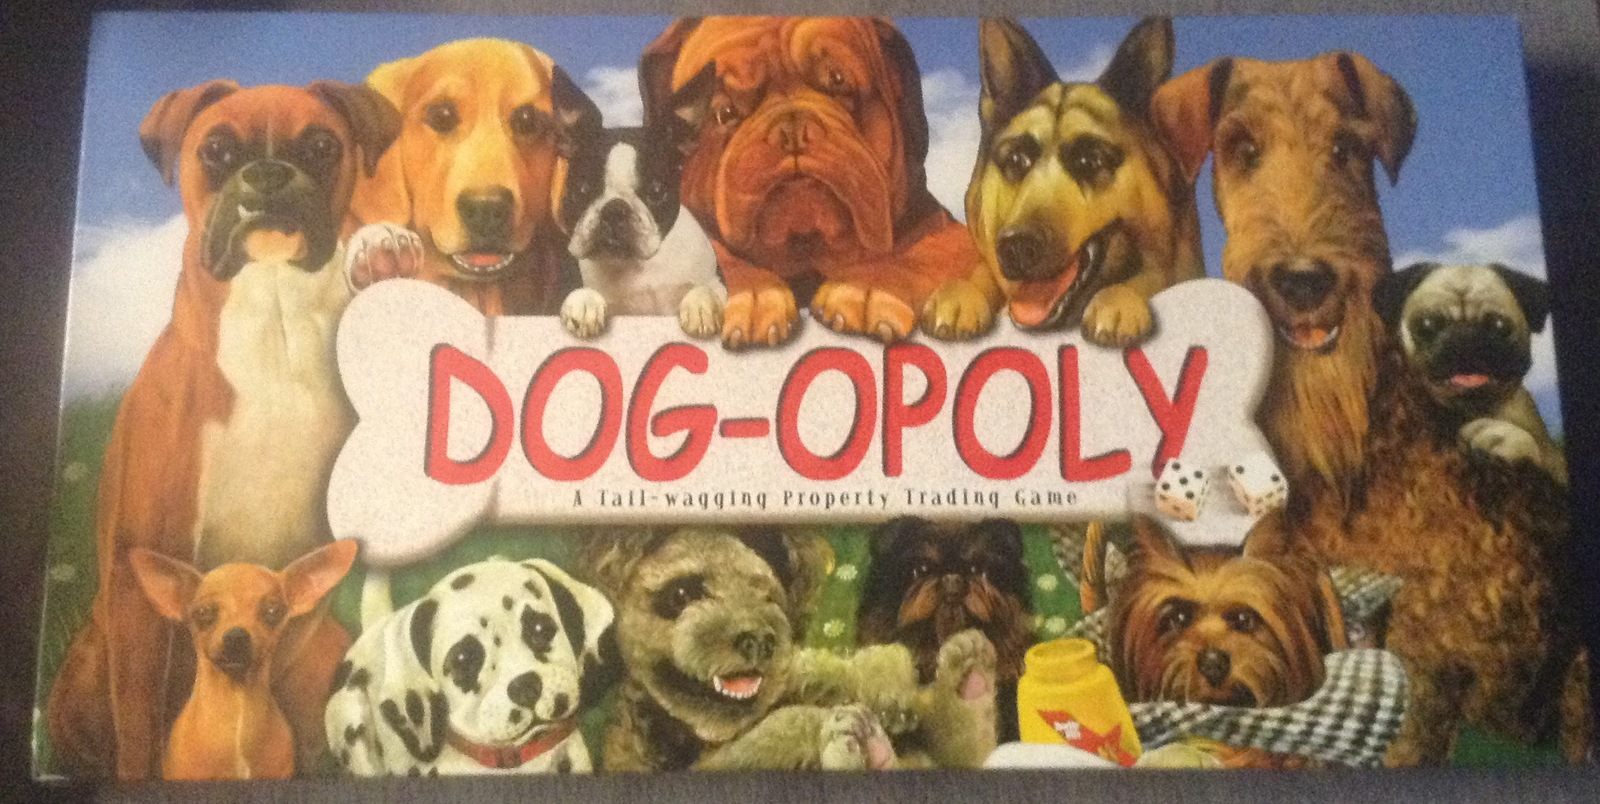 Dog-opoly Dog Monopoly Property Trading Game 2 to 6 Players Board Game